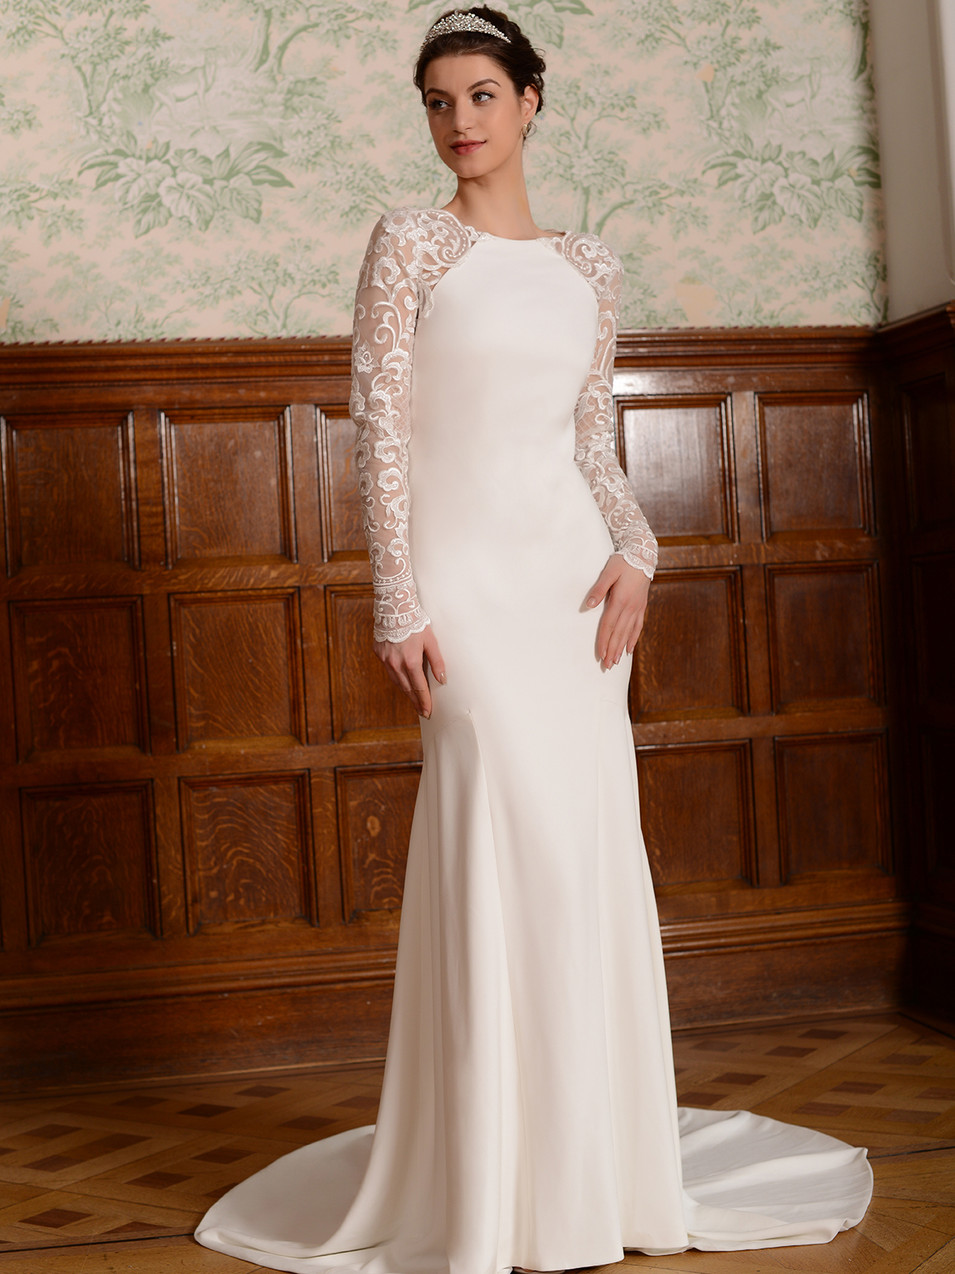 Ava - by Millie May - £899